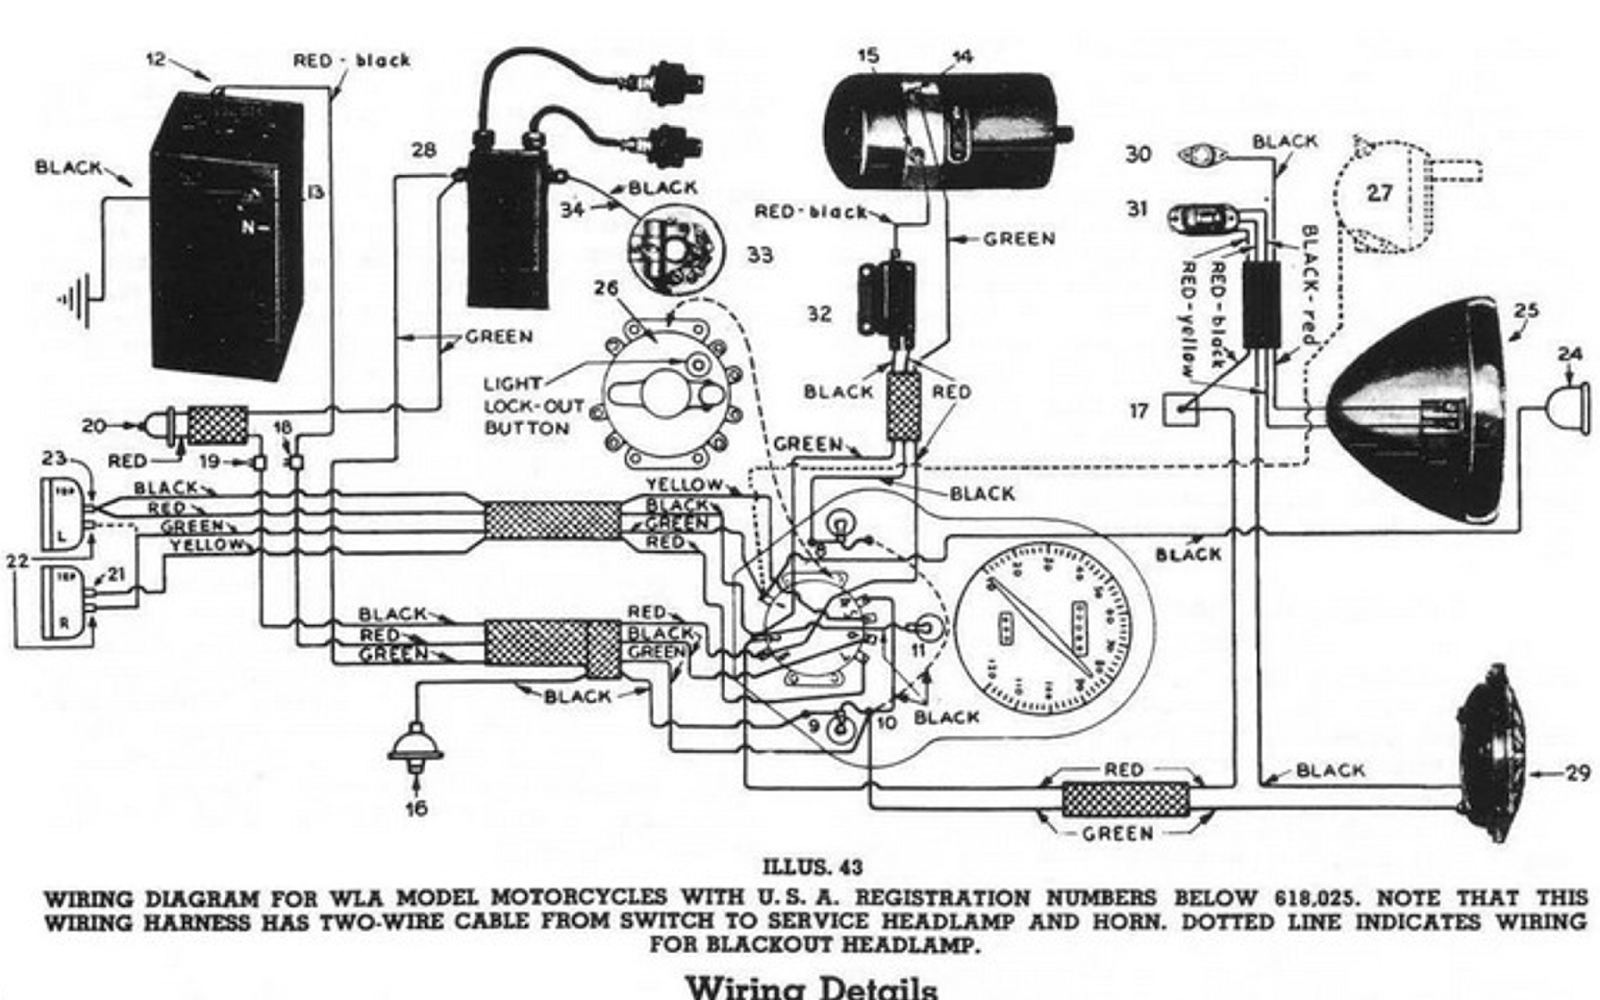 Harley Davidson Wiring Diagram: 1941 Harley Davidson WL Restoration : Re-Wiring the Harley ,Design